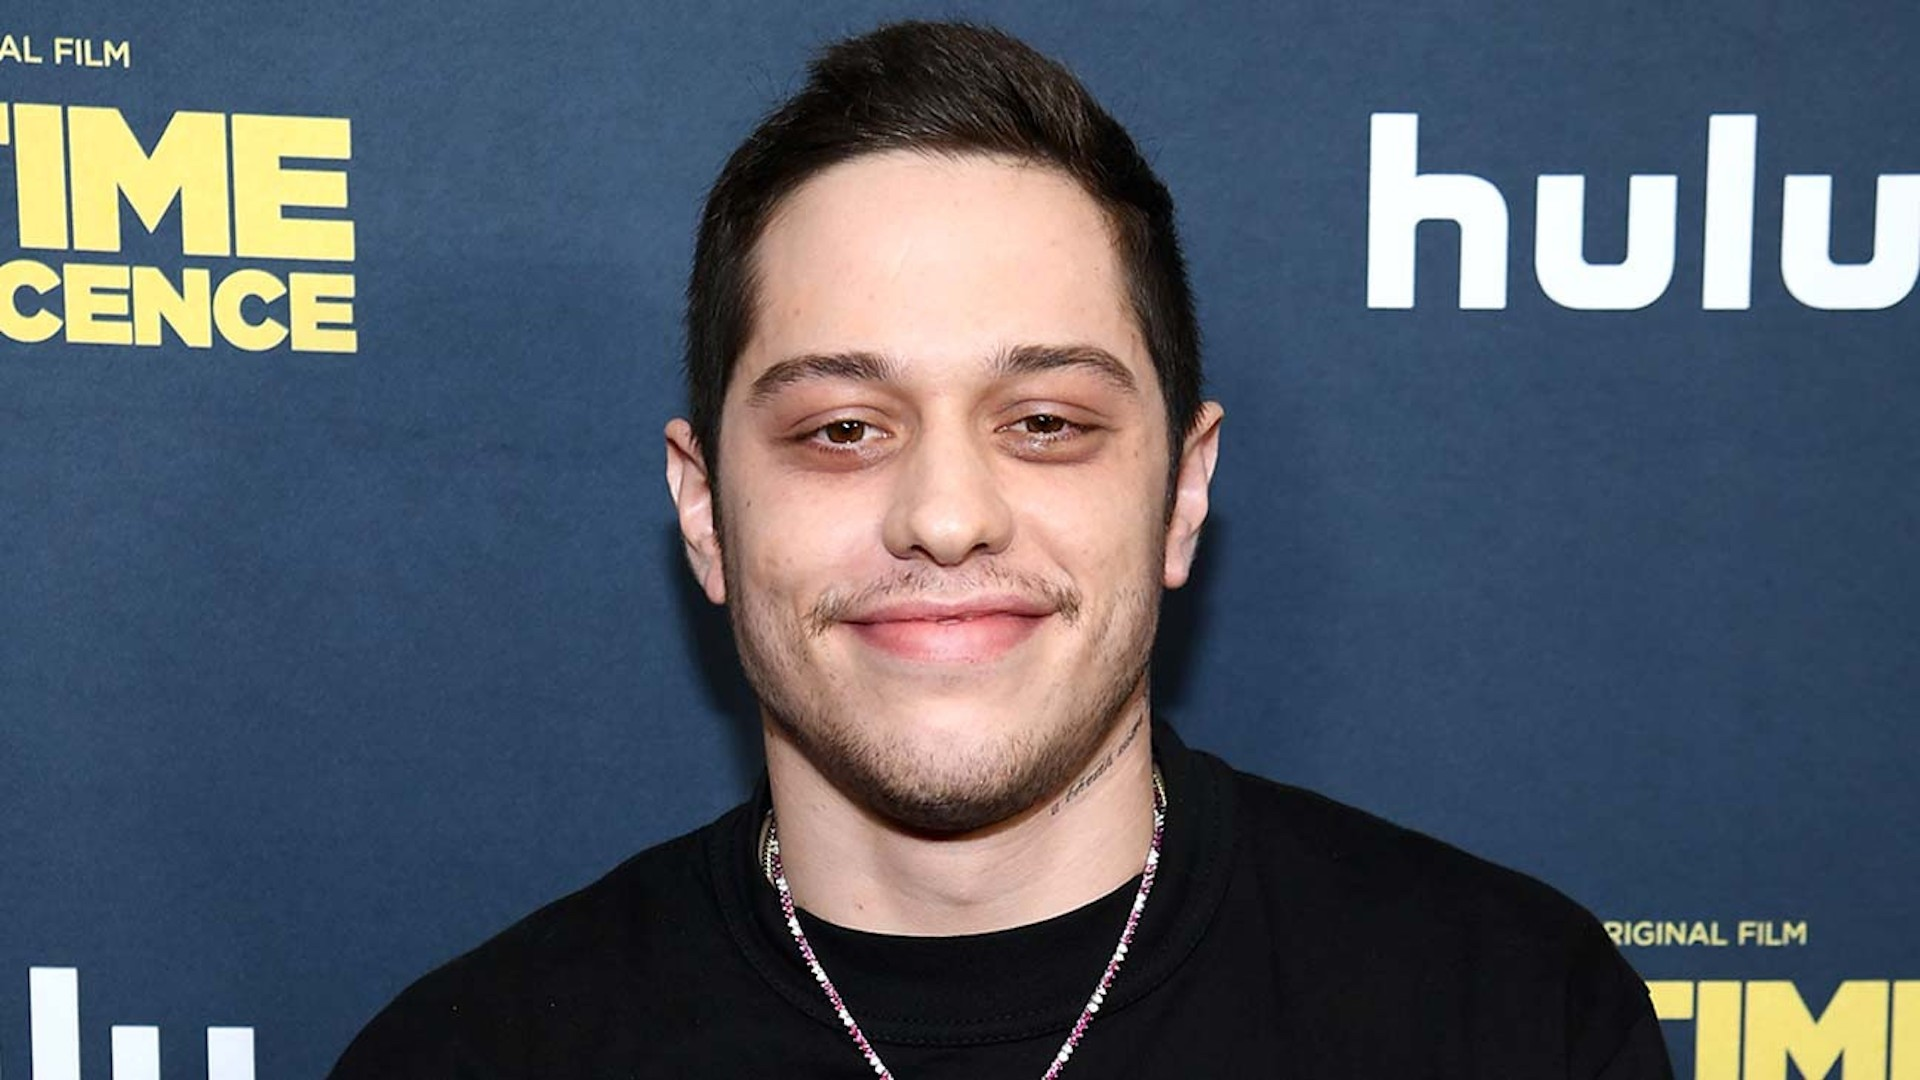 Pete Davidson Shares How a Lie Resulted in Alec Baldwin's Weight Loss | THR News